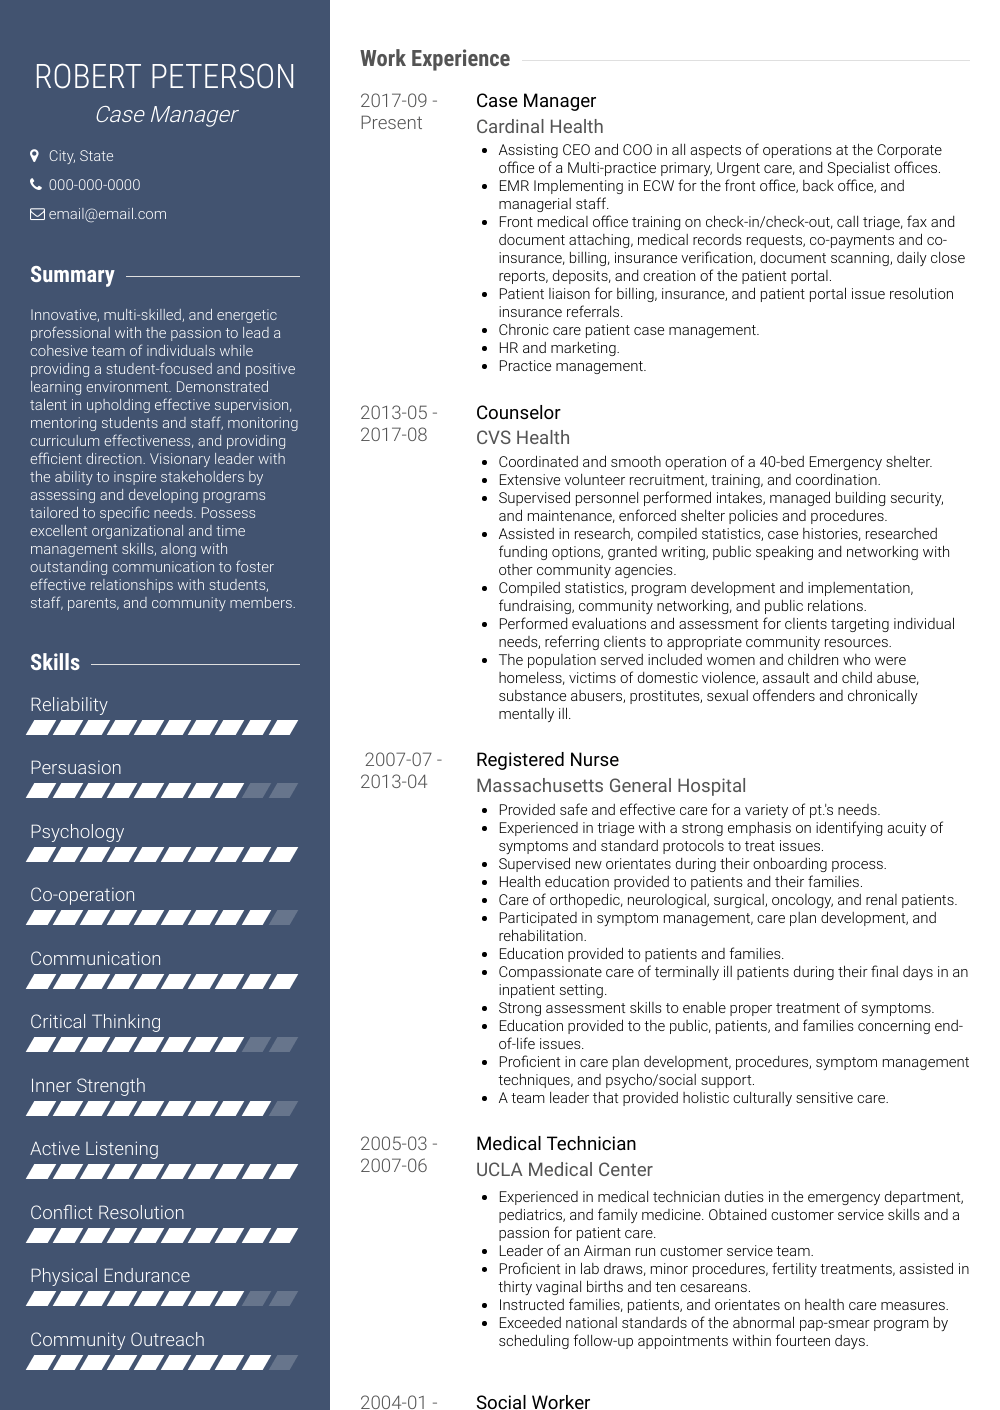 Case Manager Resume Sample and Template